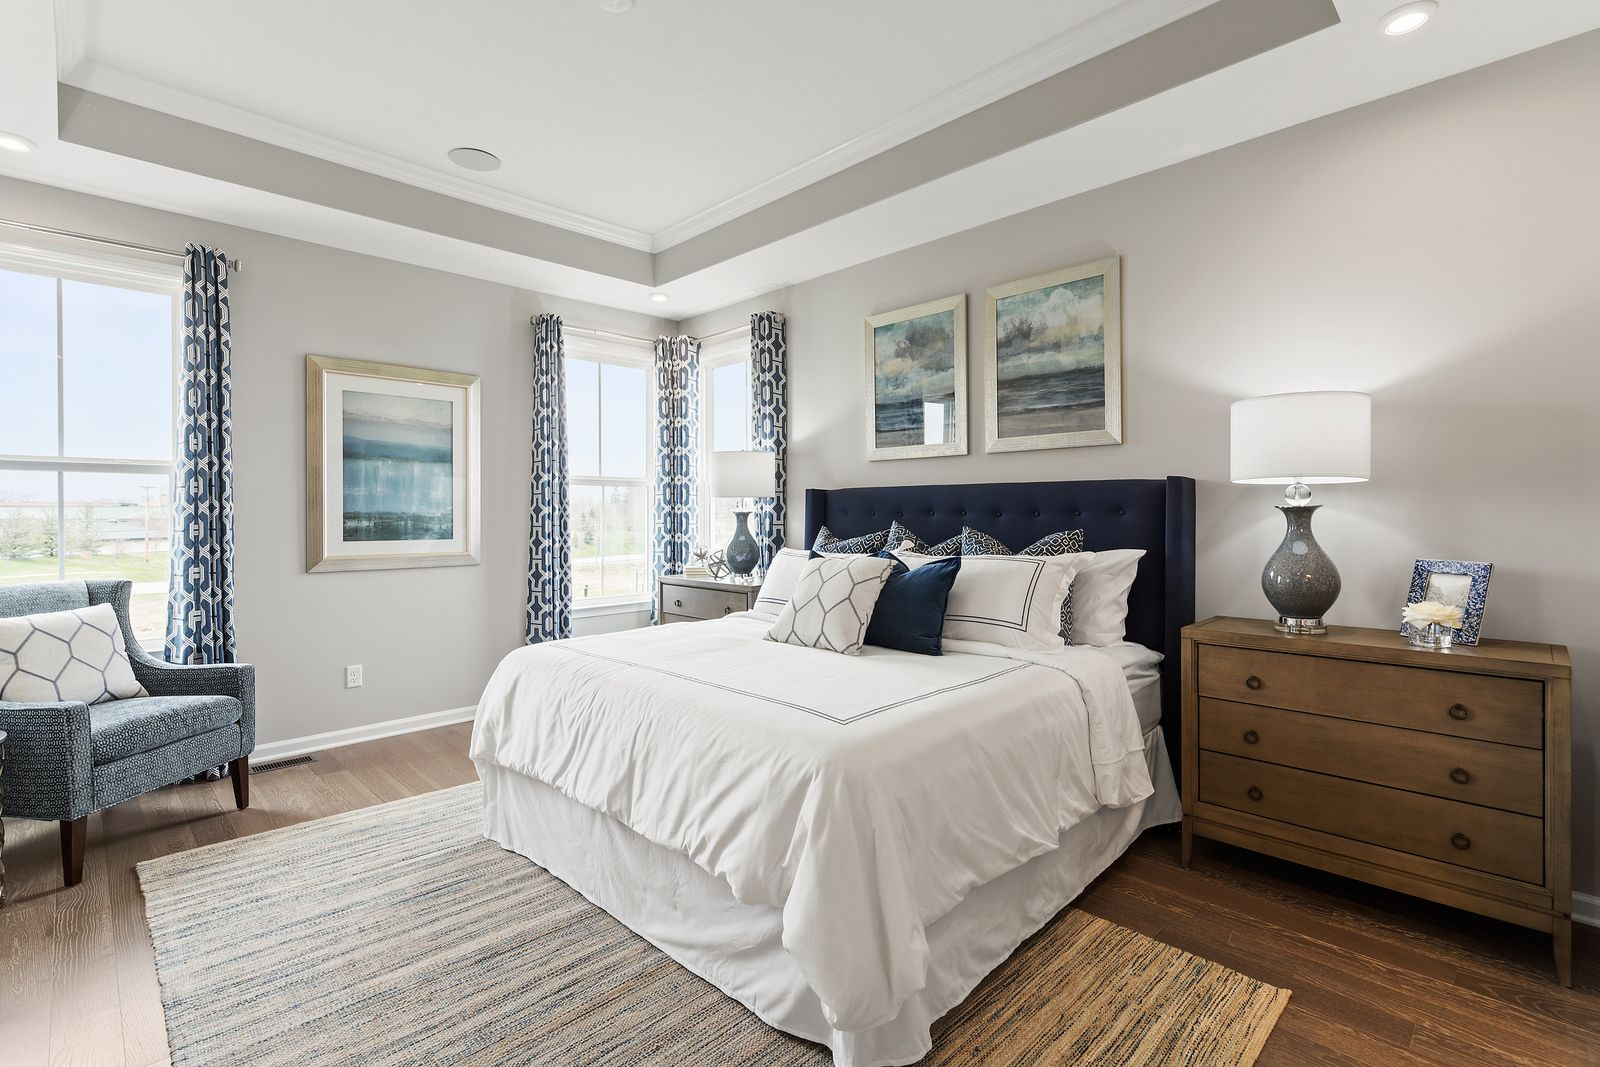 Bedroom featured in the Griffin Hall Basement By Ryan Homes in Charlotte, NC